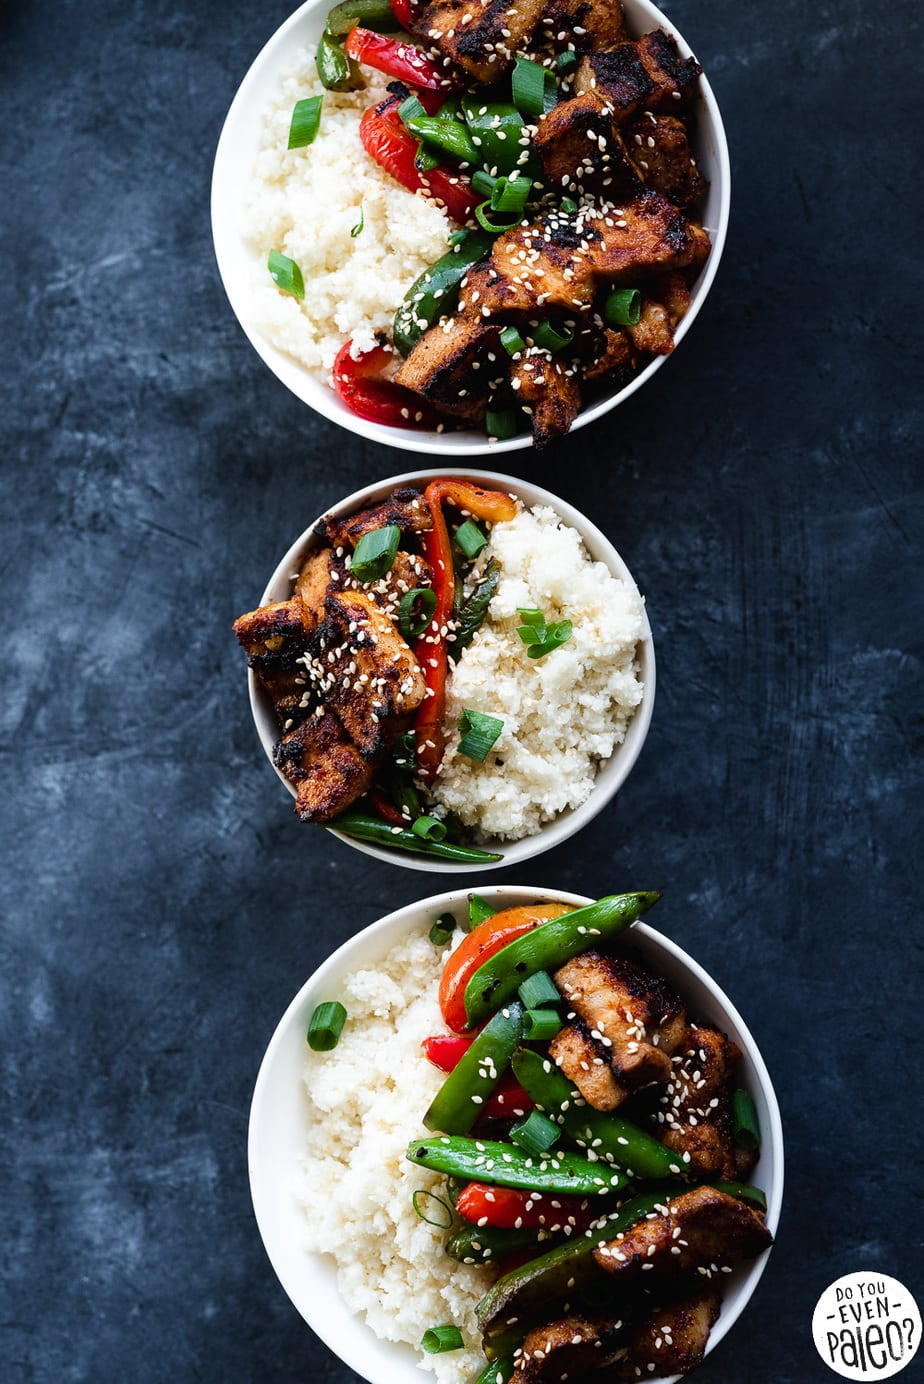 Paleo Pork Belly Stir Fry Recipe with veggies and cauliflower rice arranged in three white bowls on a dark background by DoYouEvenPaleo.net